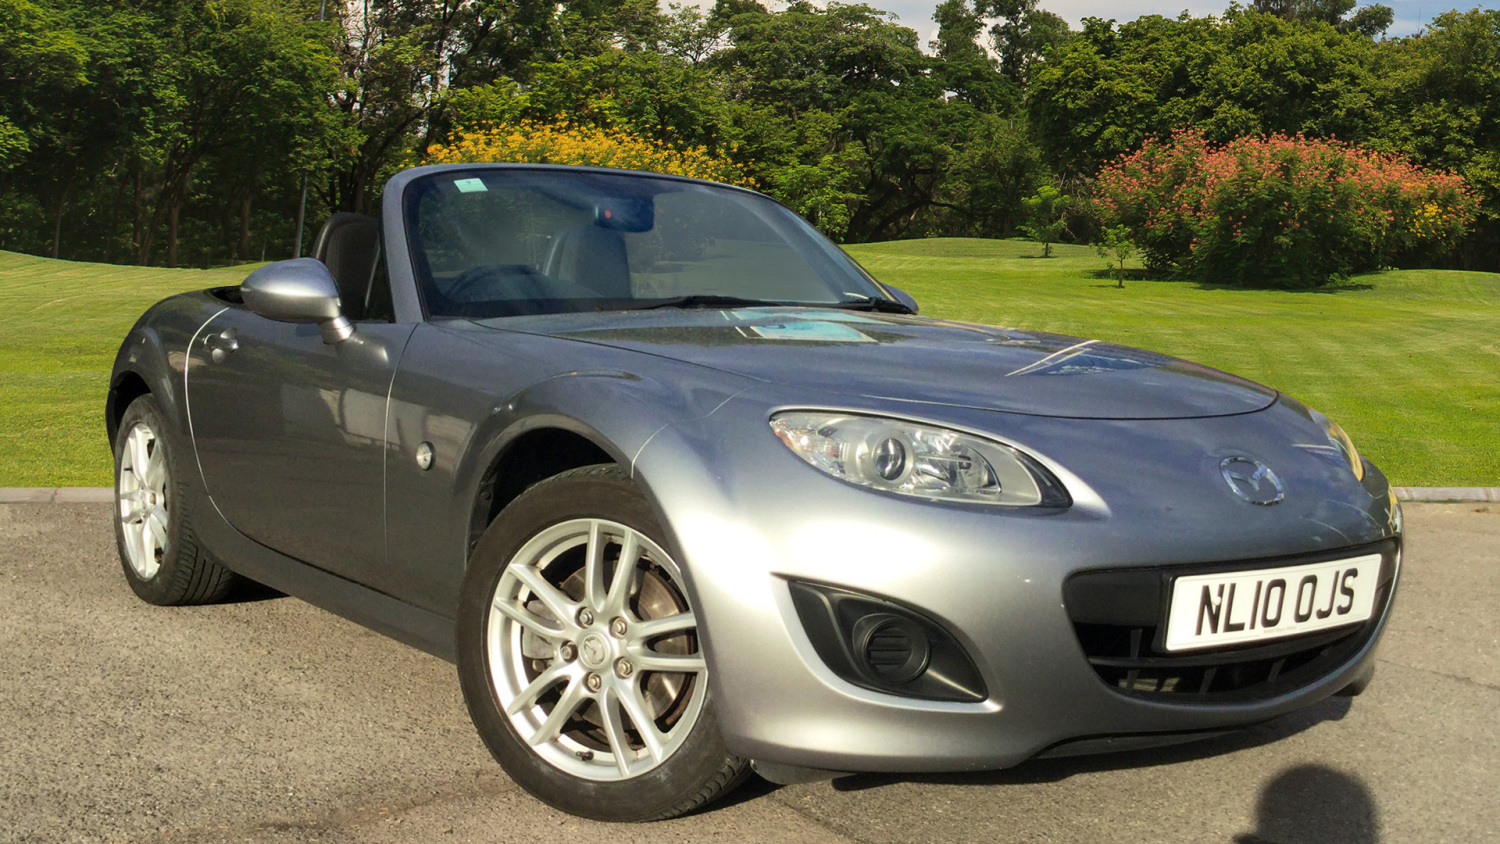 Used Mazda Mx 5 1 8i Se 2dr Petrol Convertible For Sale In